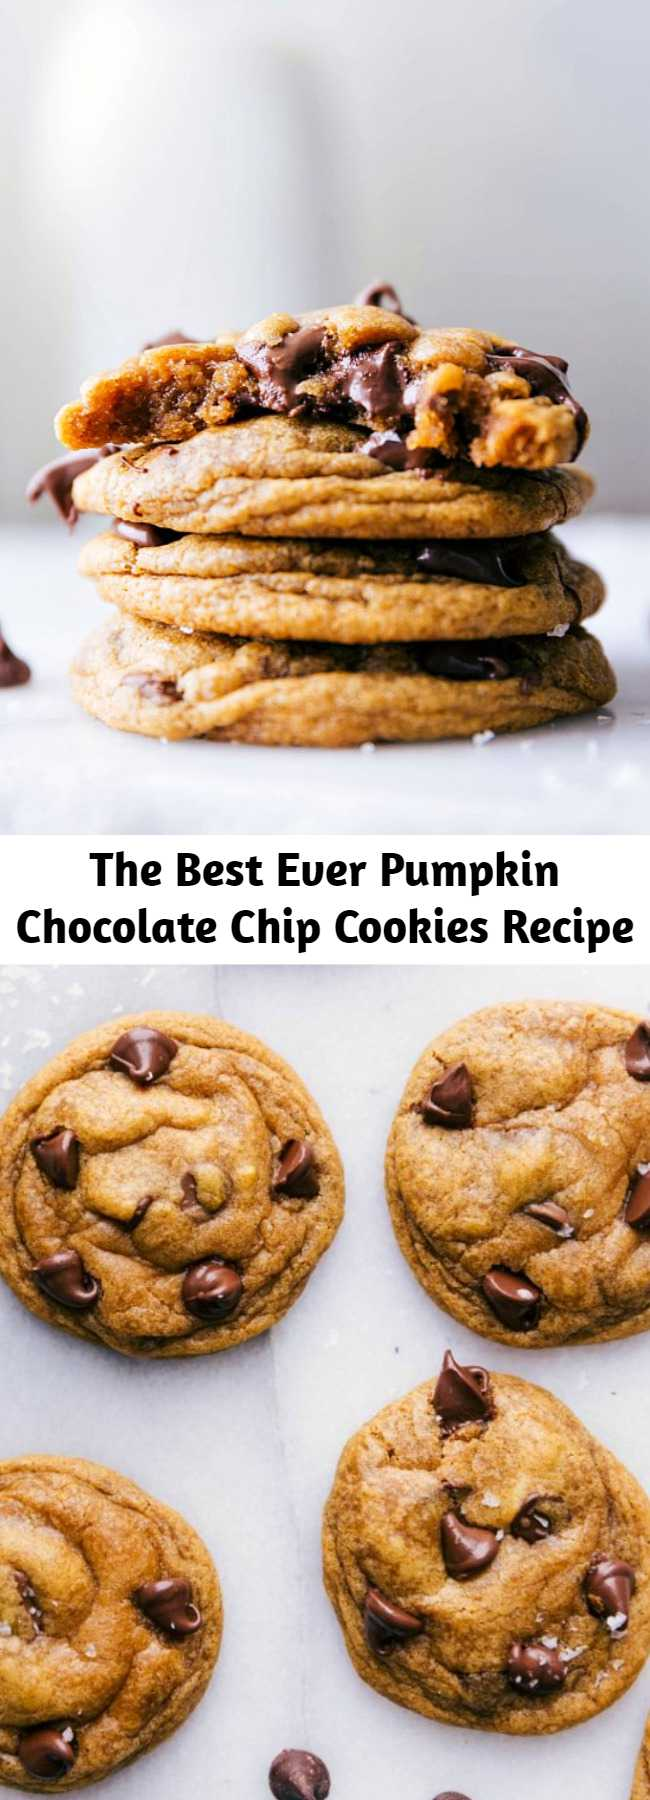 The Best Ever Pumpkin Chocolate Chip Cookies Recipe - The best-ever Pumpkin Chocolate Chip Cookies! These cookies are soft and chewy with crisp edges instead of typical cake-like pumpkin cookies.